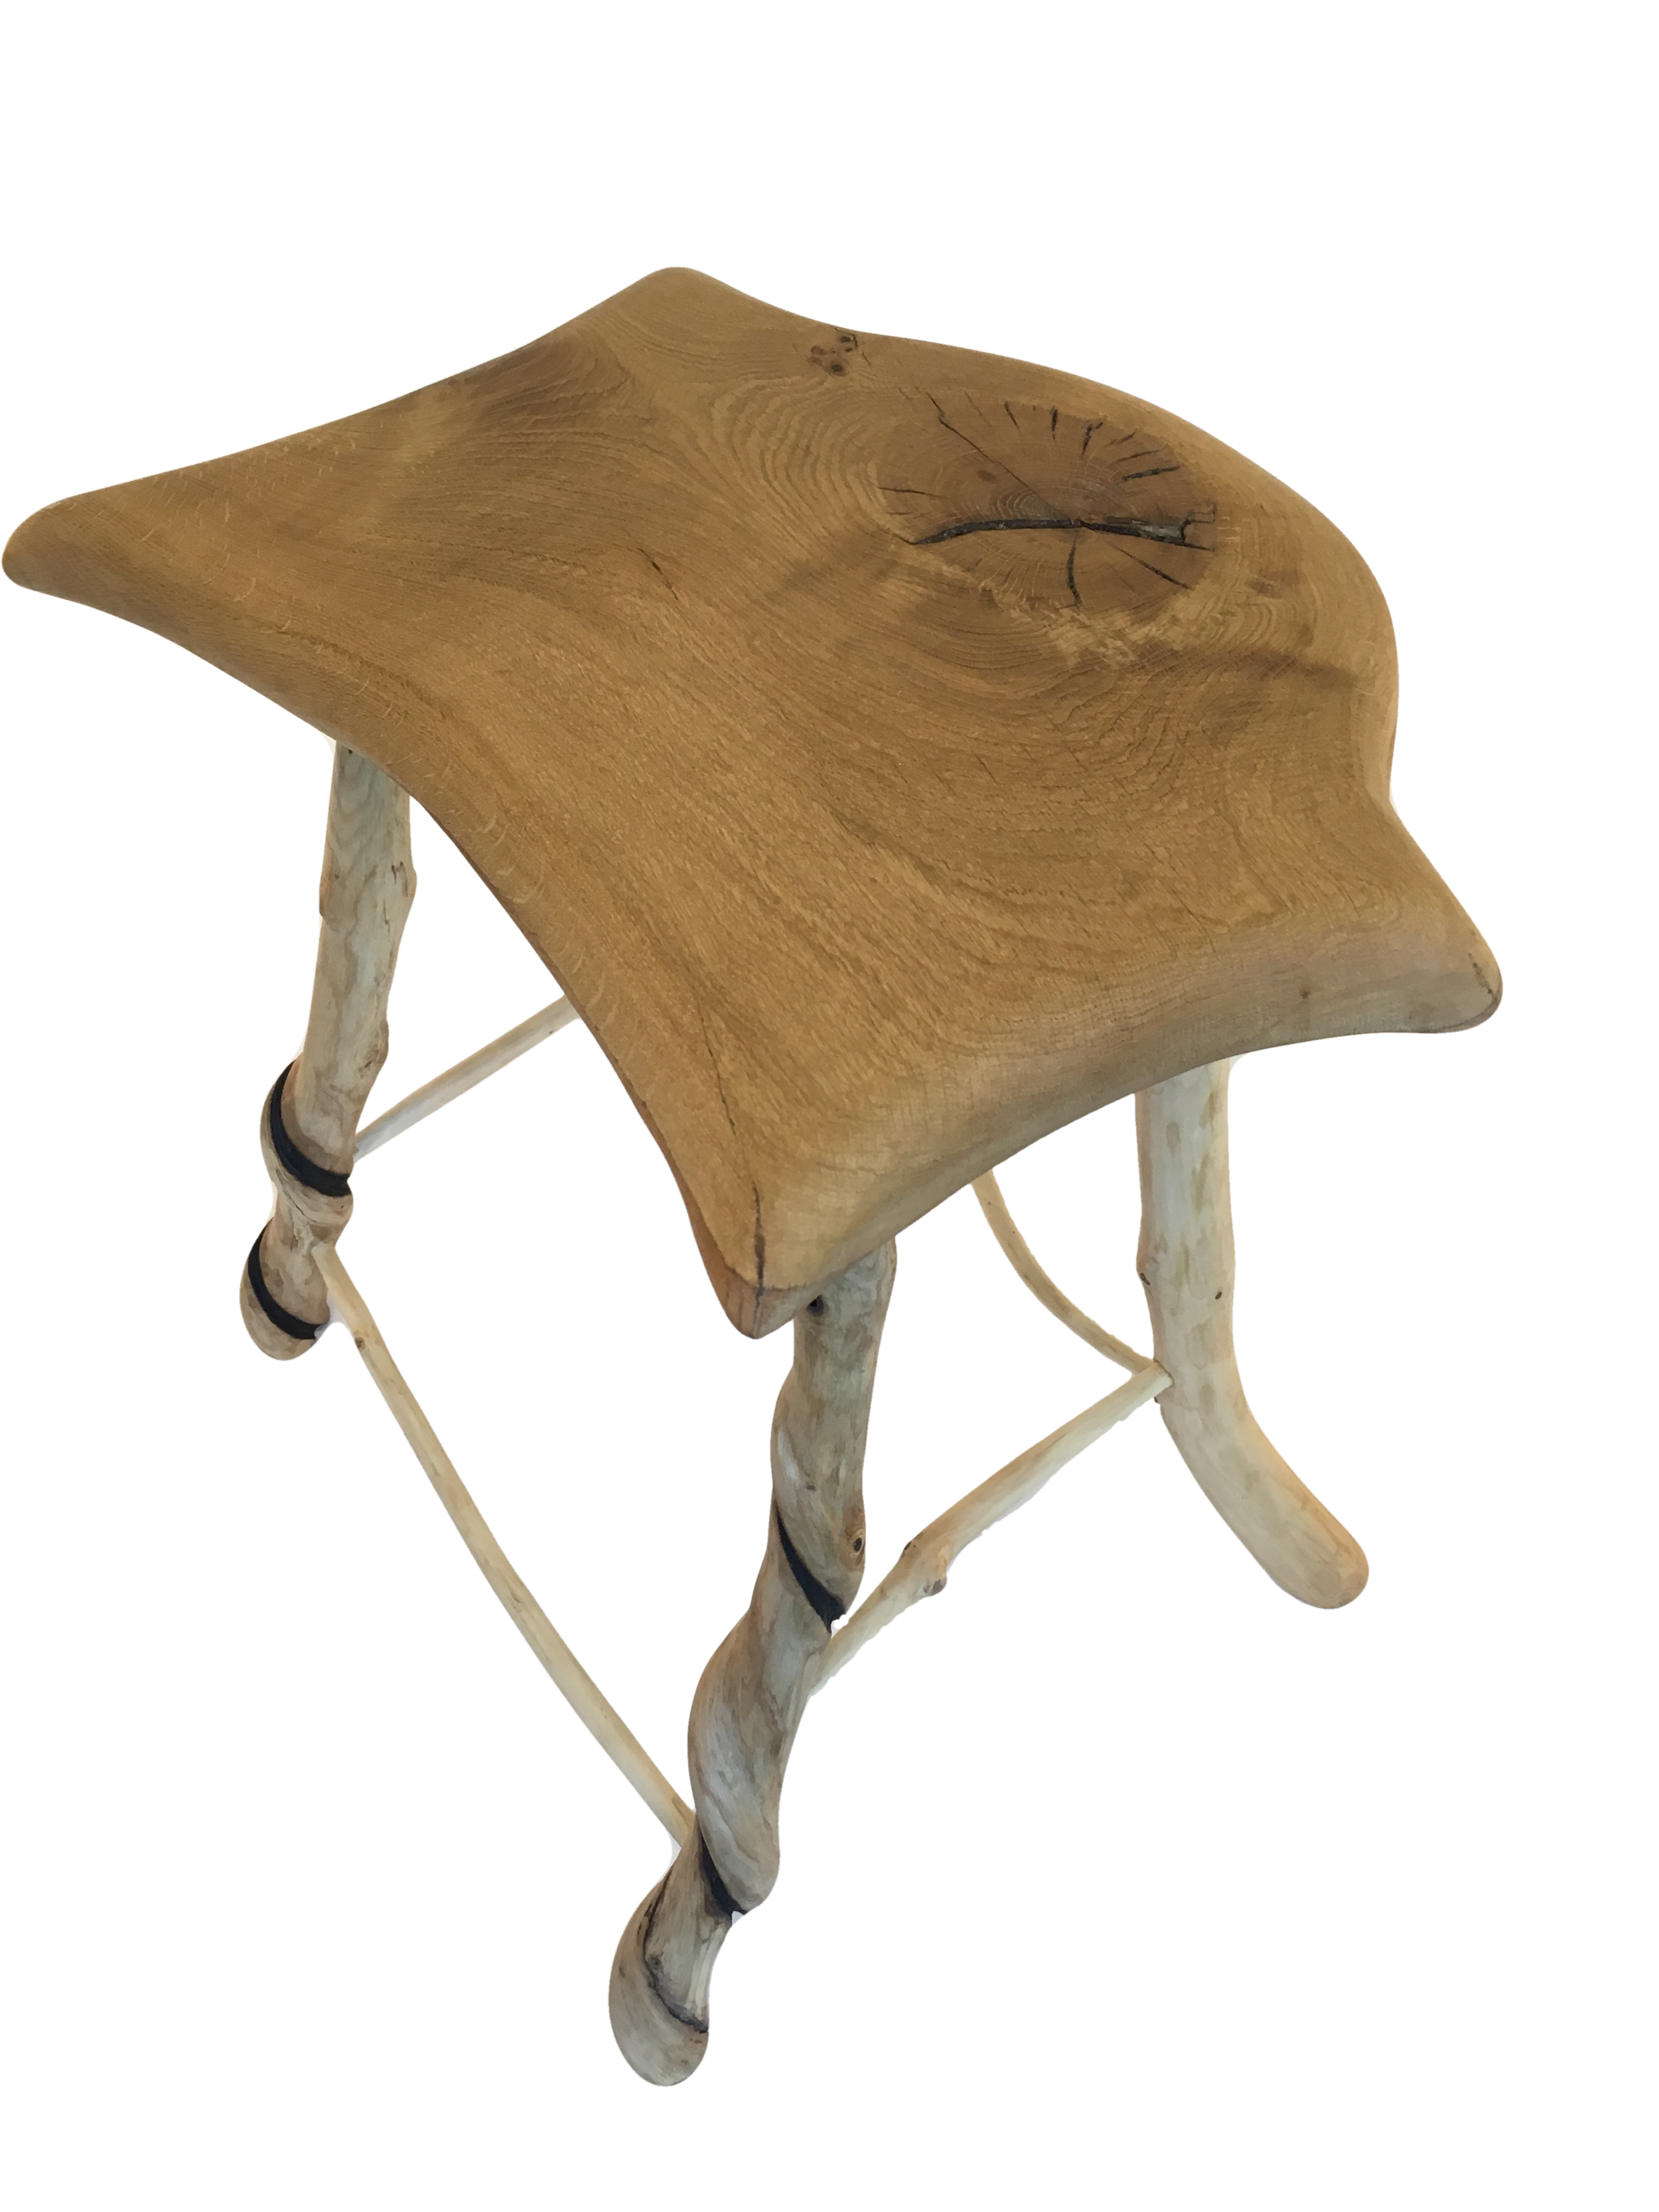 Stool 1 Side - Cropped No Shadow.png